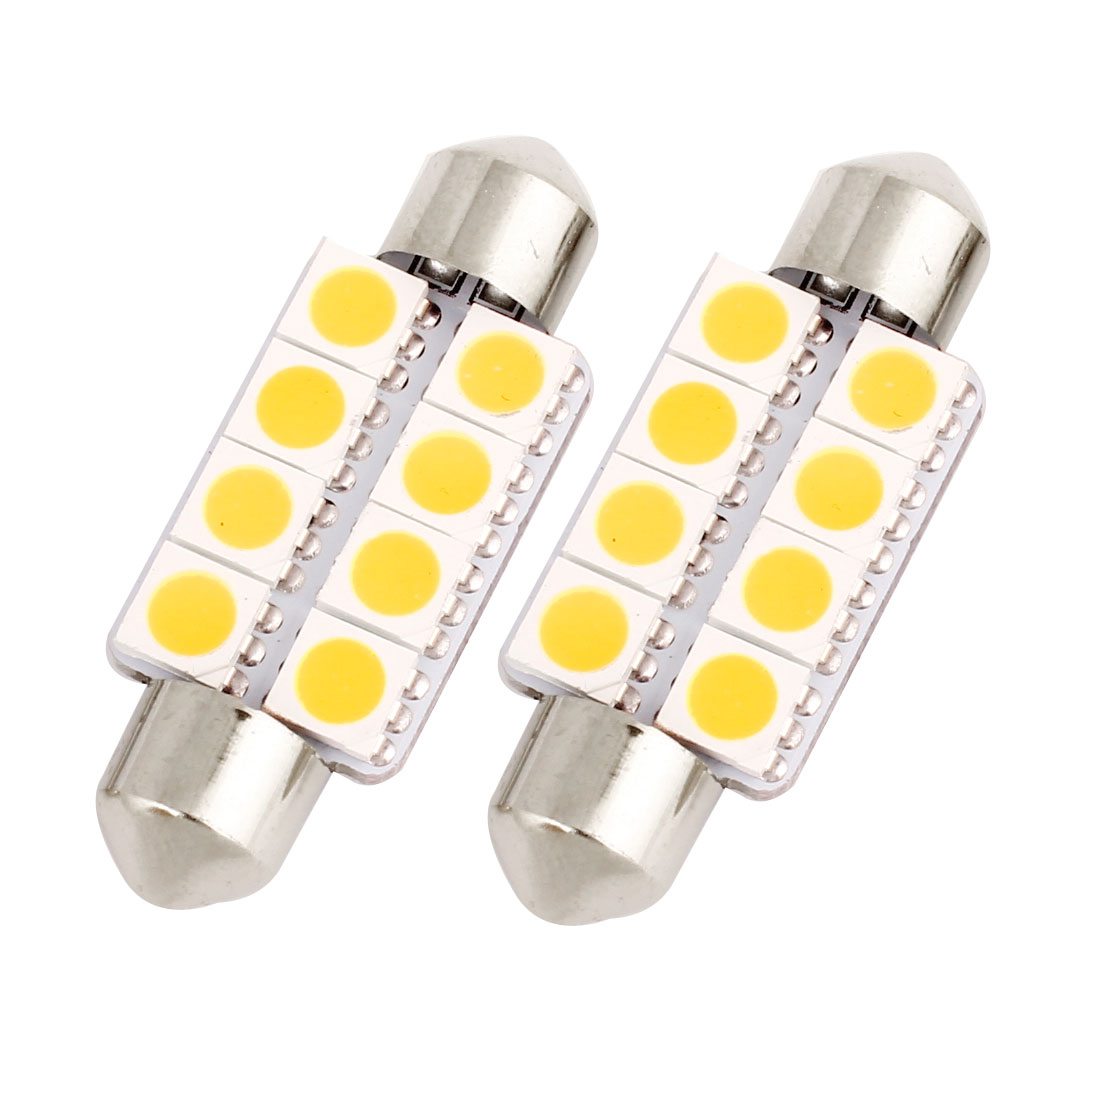 "2 Pcs 39mm 1.54"" 5050 SMD 8-LED Warm White Festoon Dome Light Bulb DE3425 DE3423 Internal"